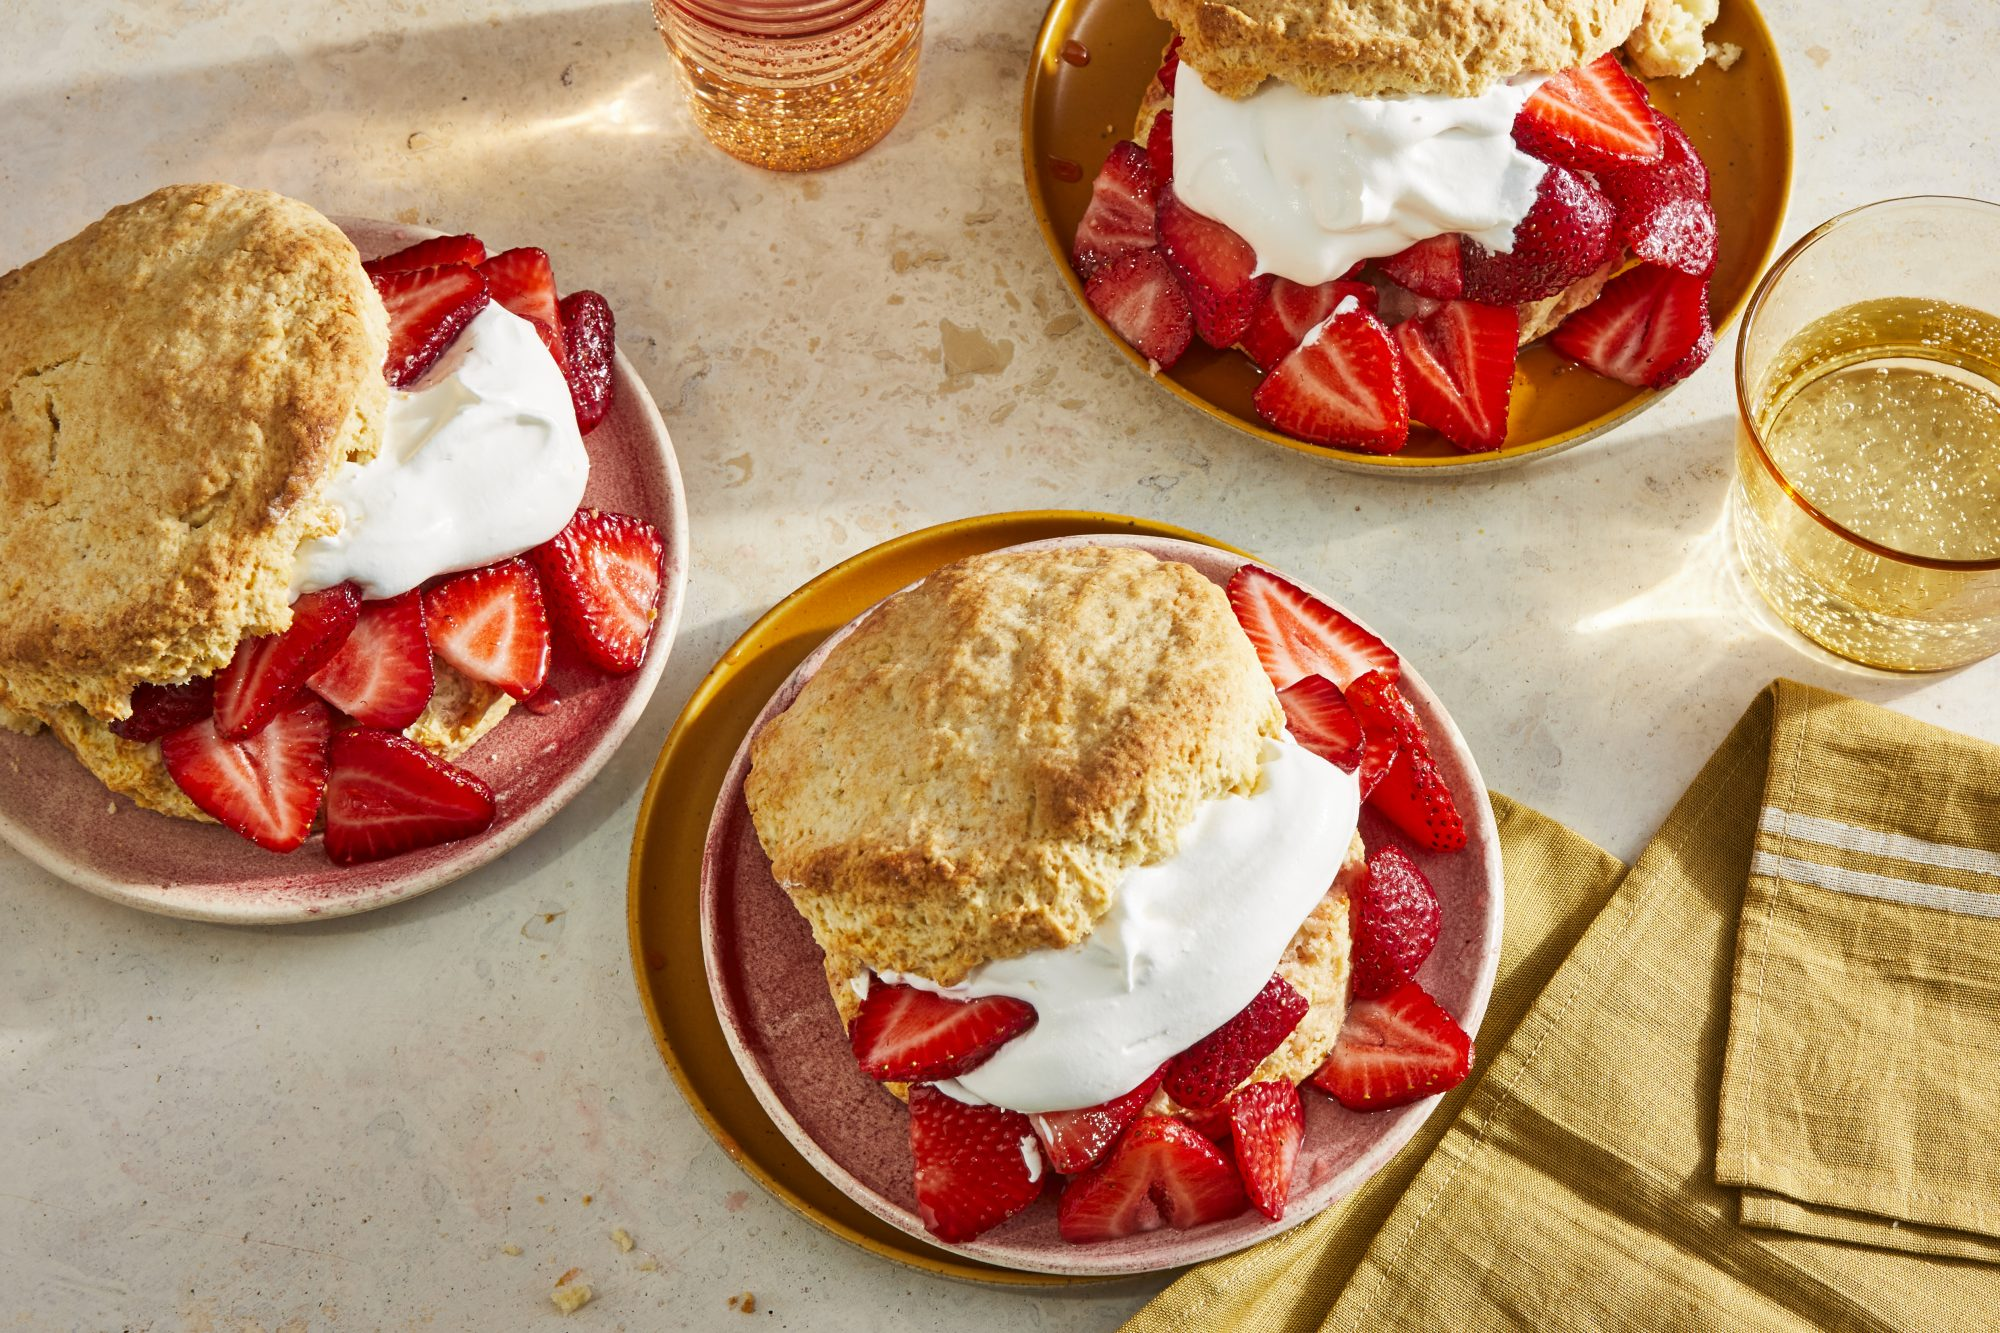 3 plates of beautiful strawberry shortcakes with scratch made biscuits, fluffy whipped cream and fresh strawberries